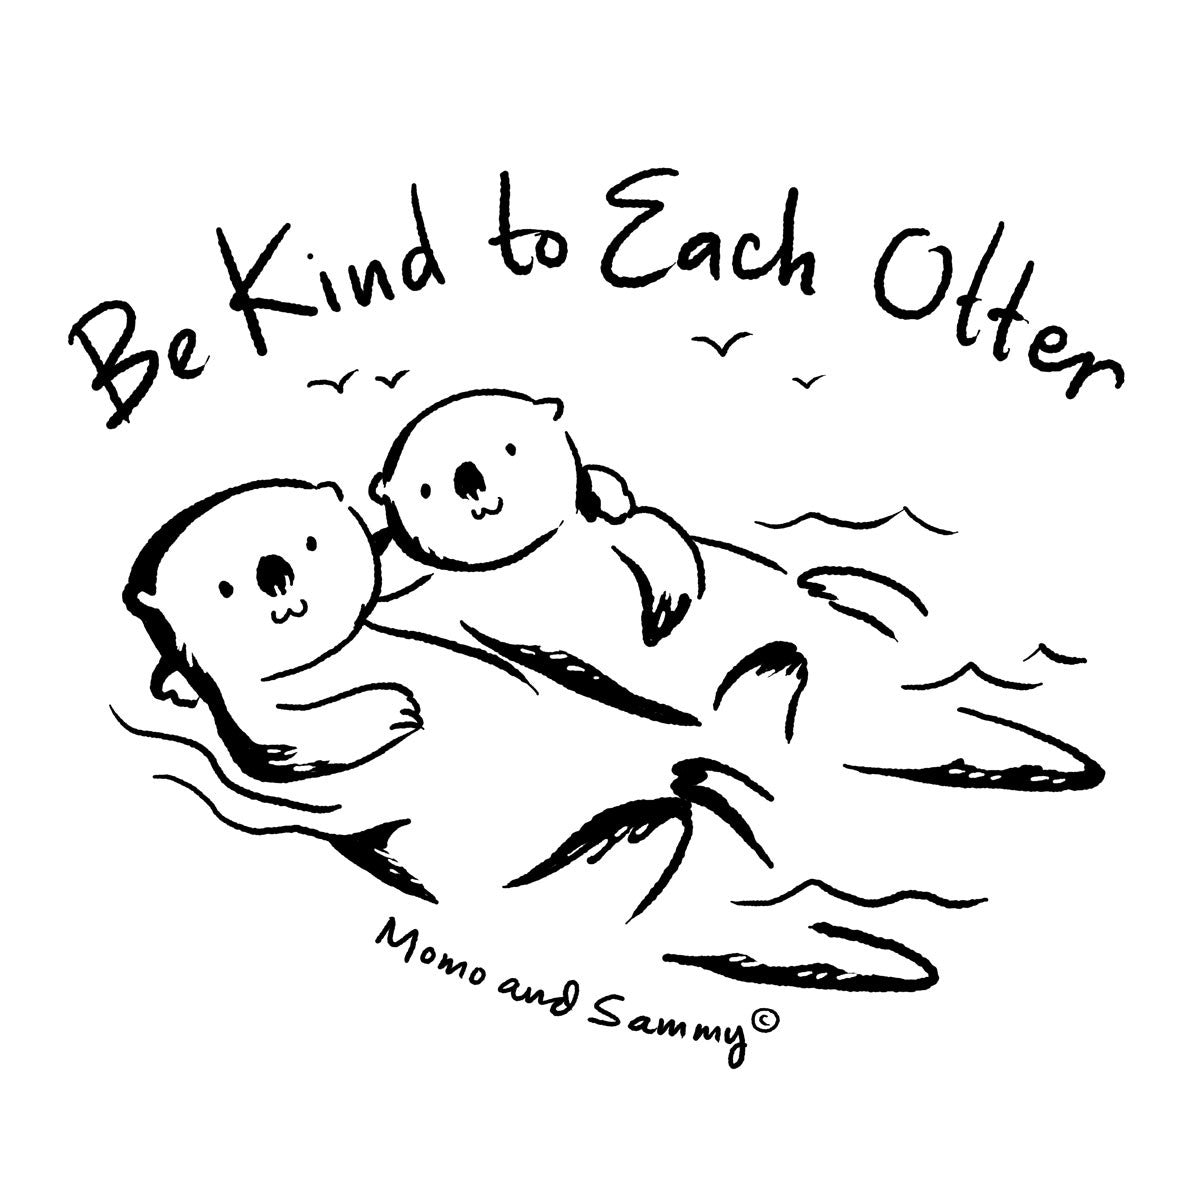 Be Kind to Each OTTER design - Momo and Sammy Clothing Co